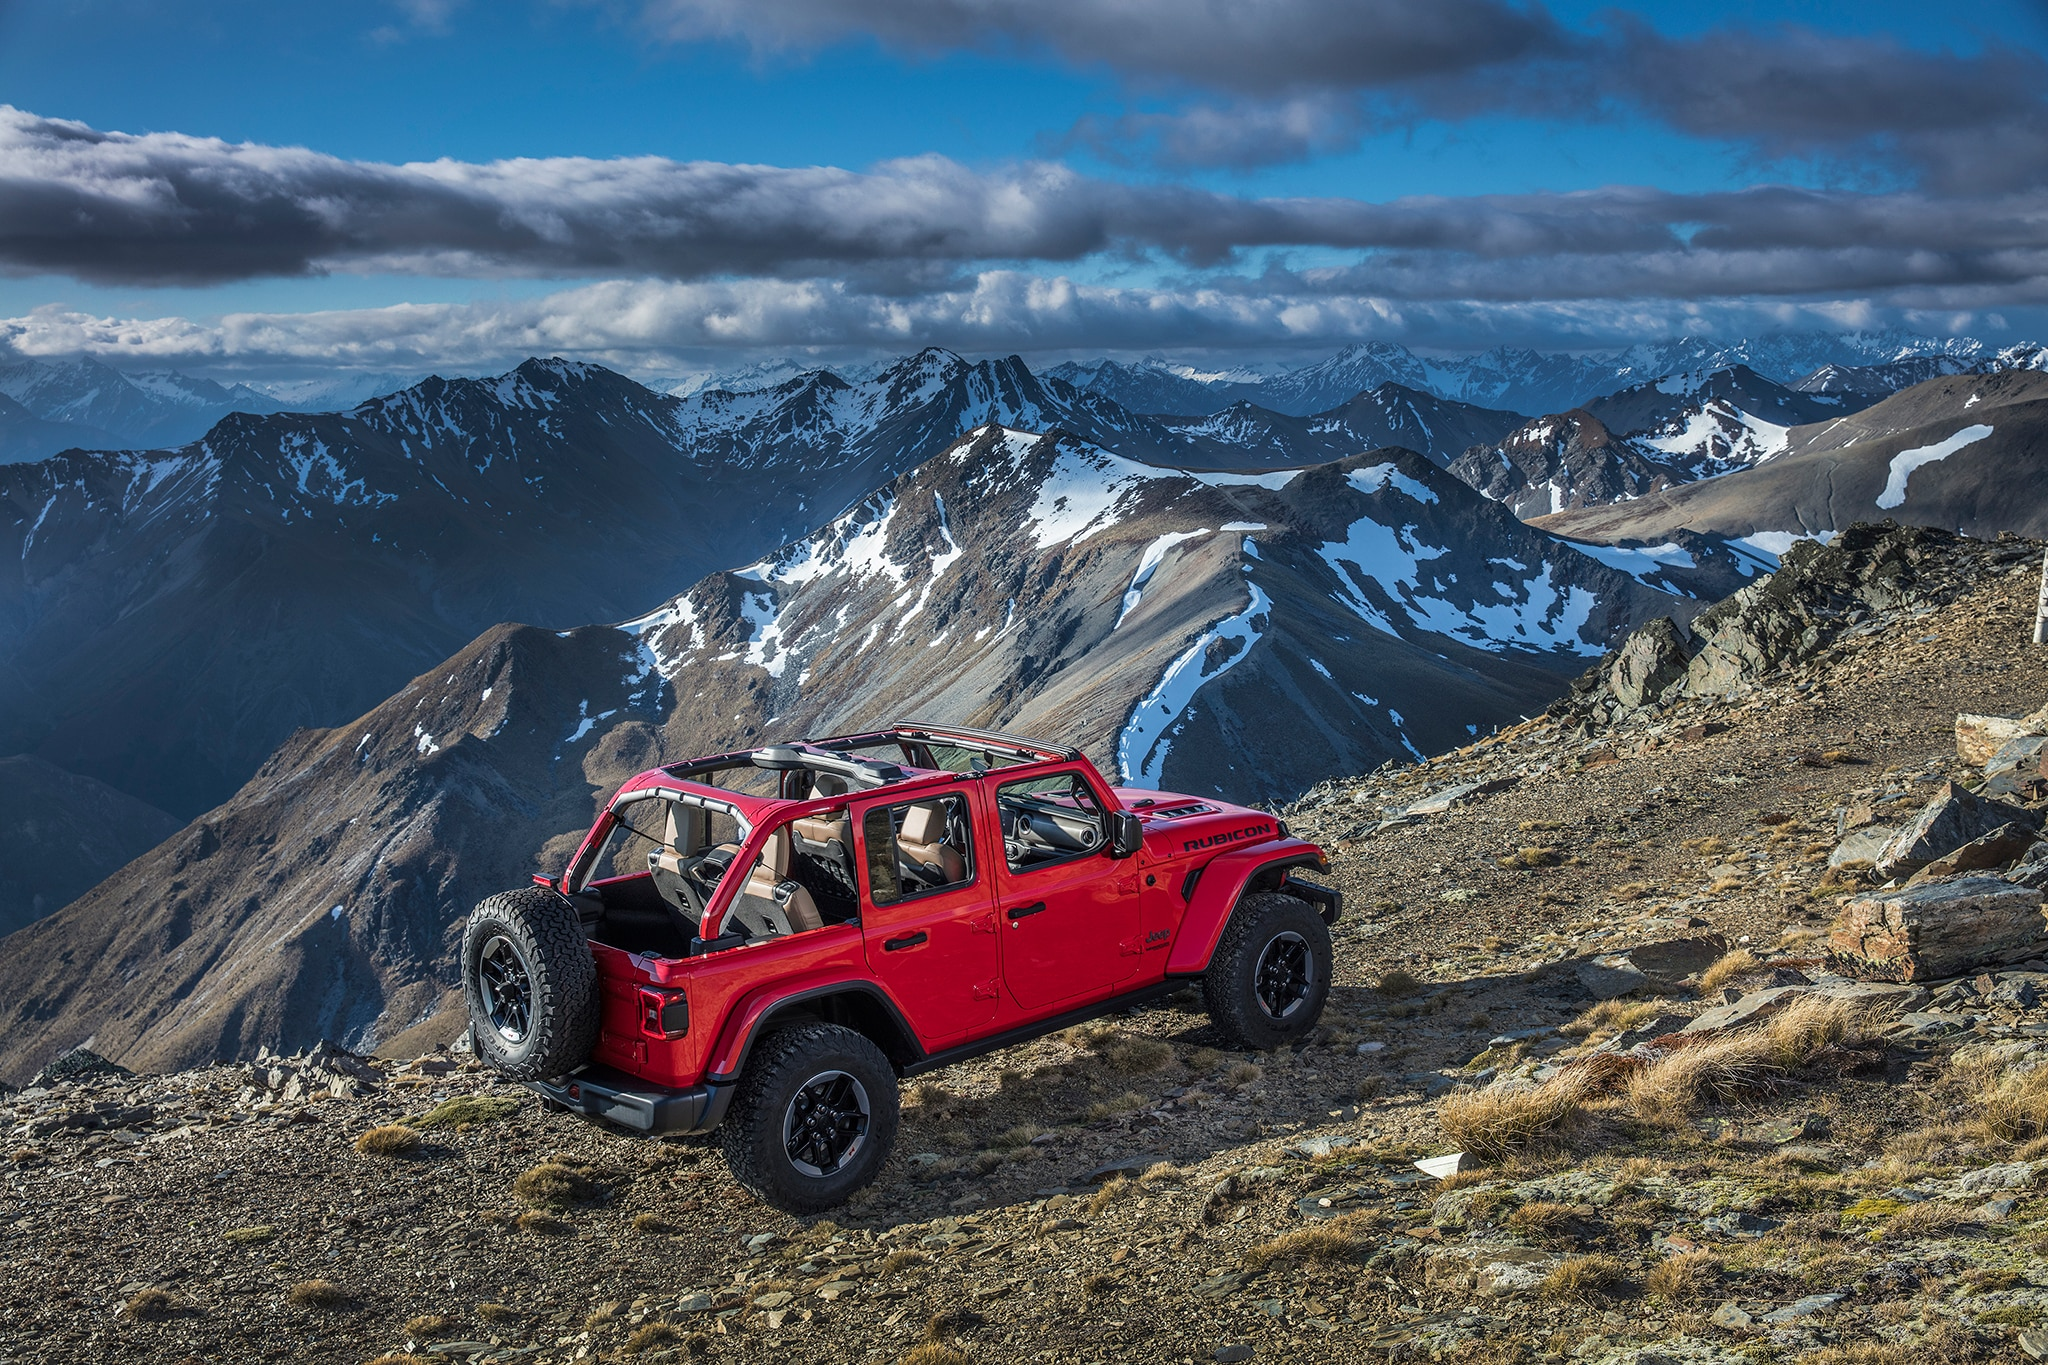 2018 Jeep Wrangler Unlimited Rubicon Rear Three Quarter 01